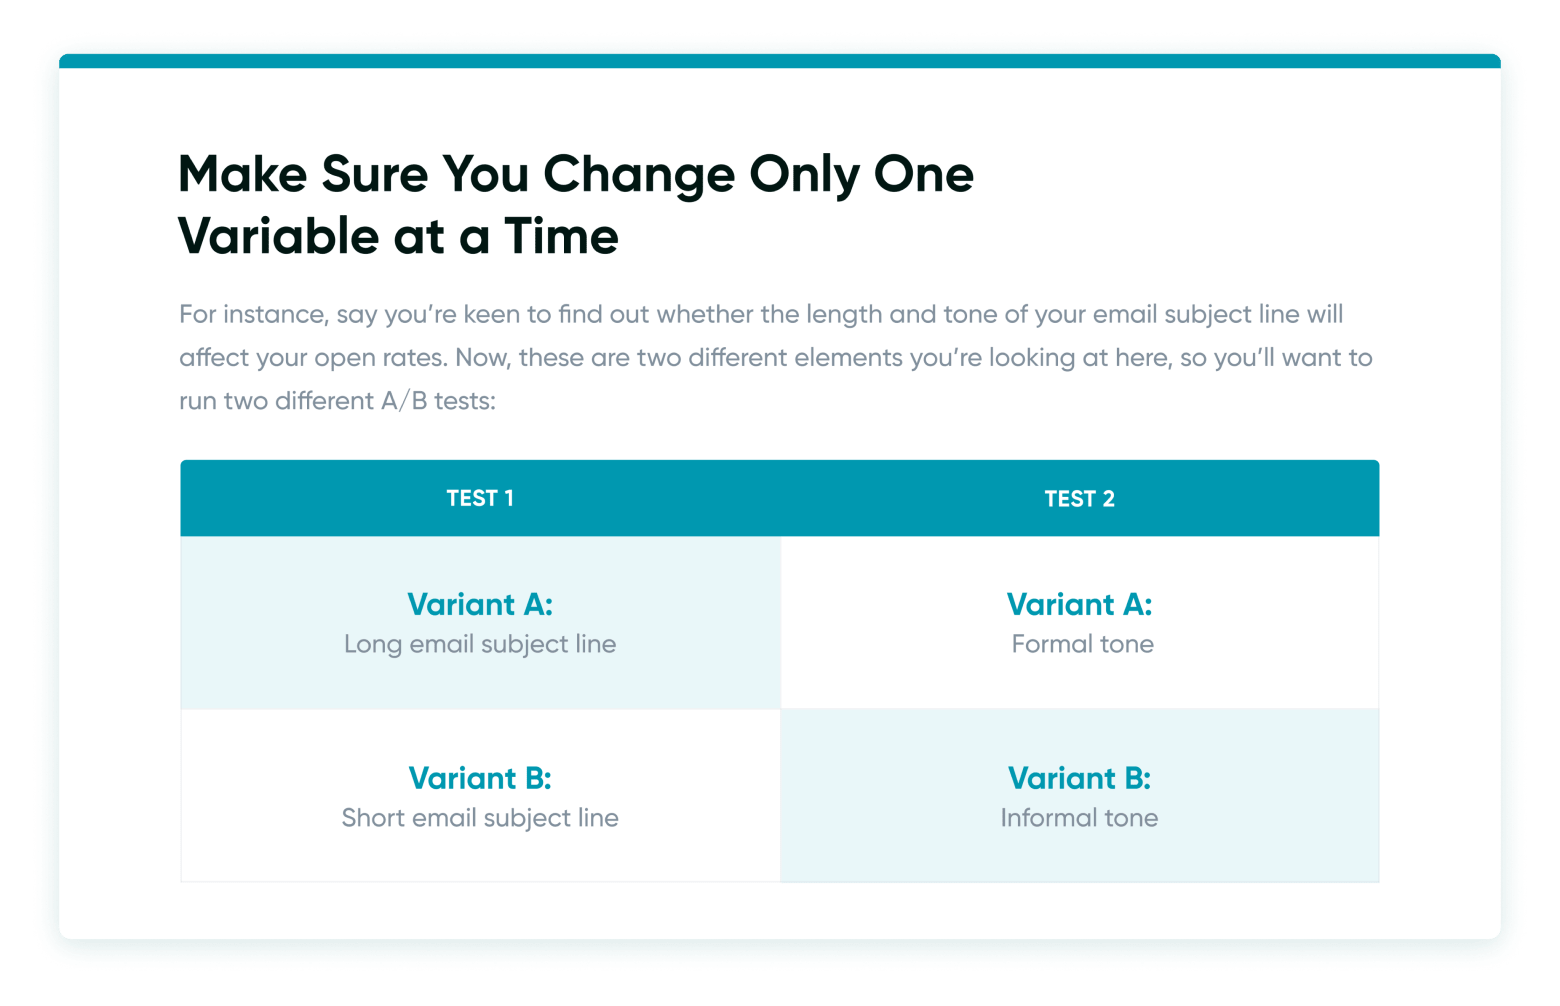 Make sure you change only one variable at a time